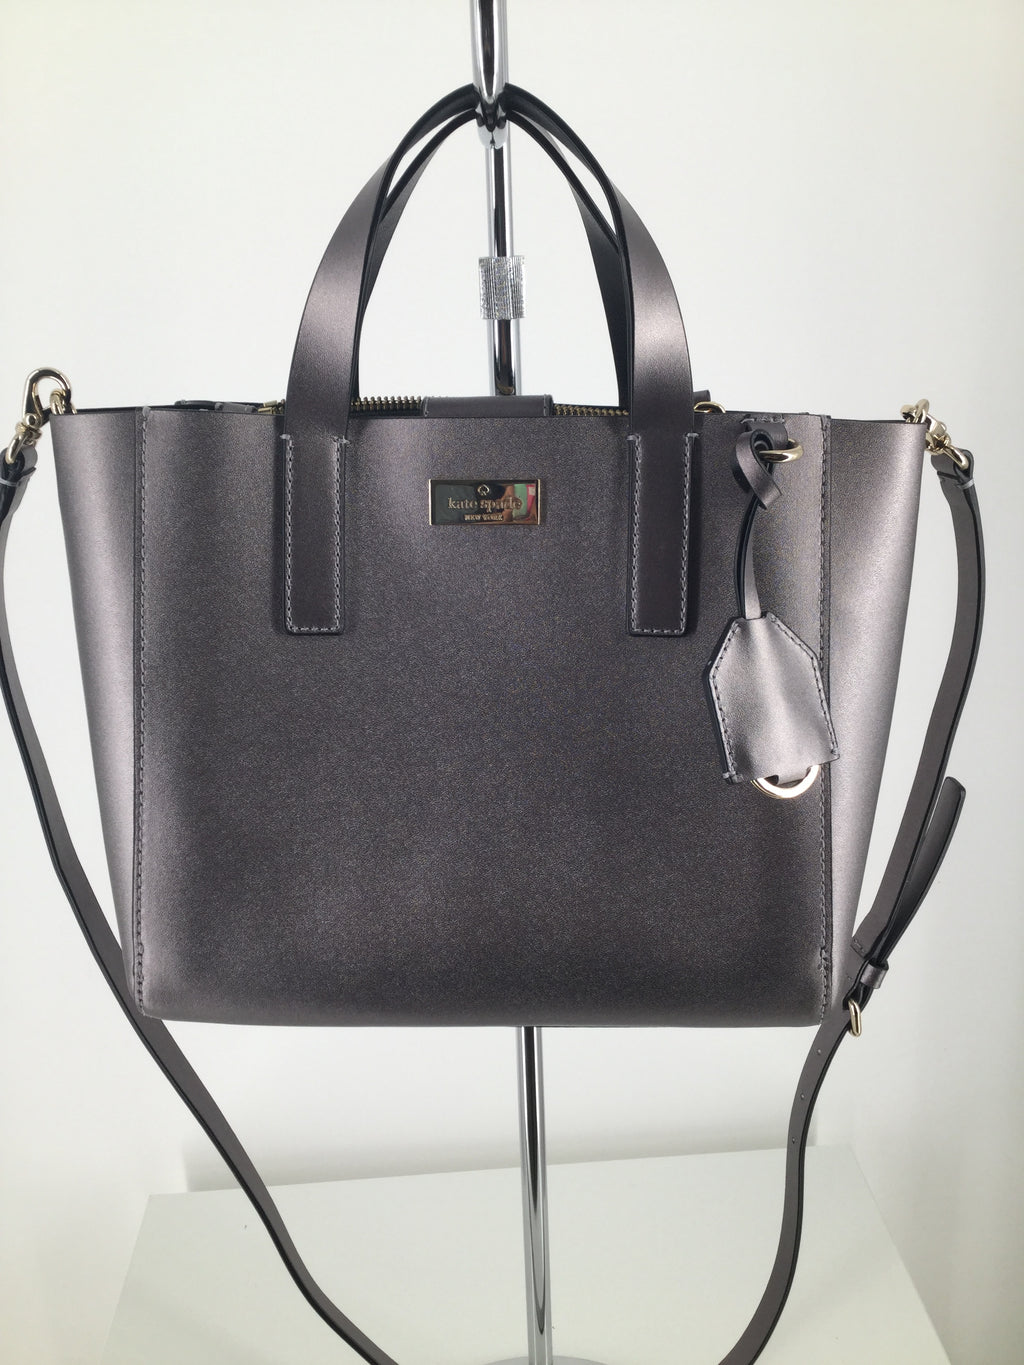 KATE SPADE HANDBAG DESIGNER SIZE:MEDIUM